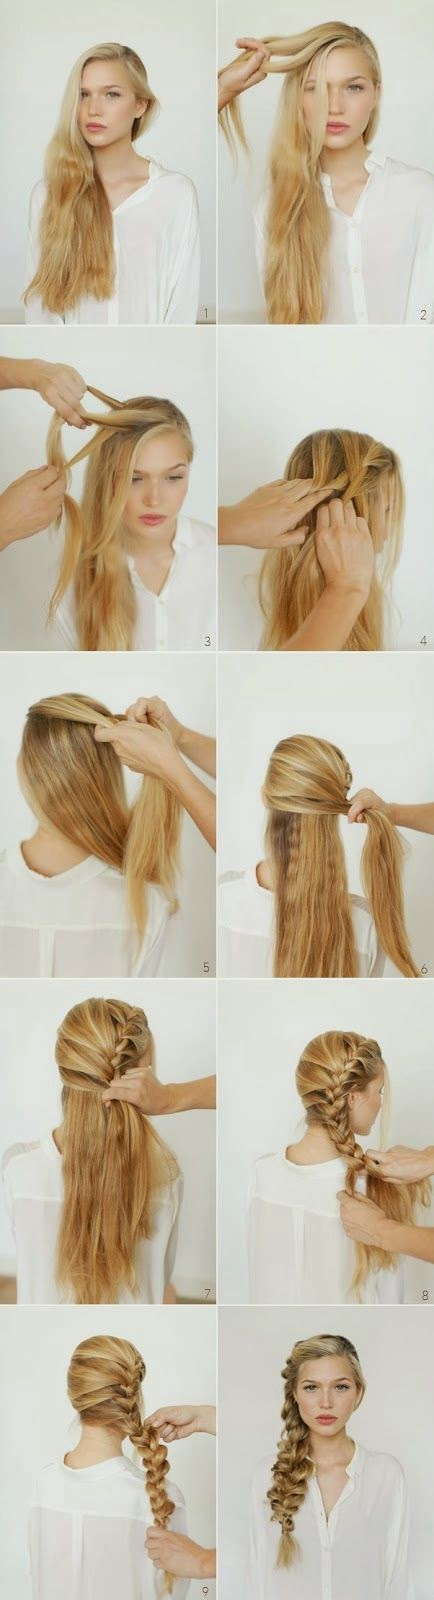 trends4everyone: Step By Step Hair Style Tutorial..